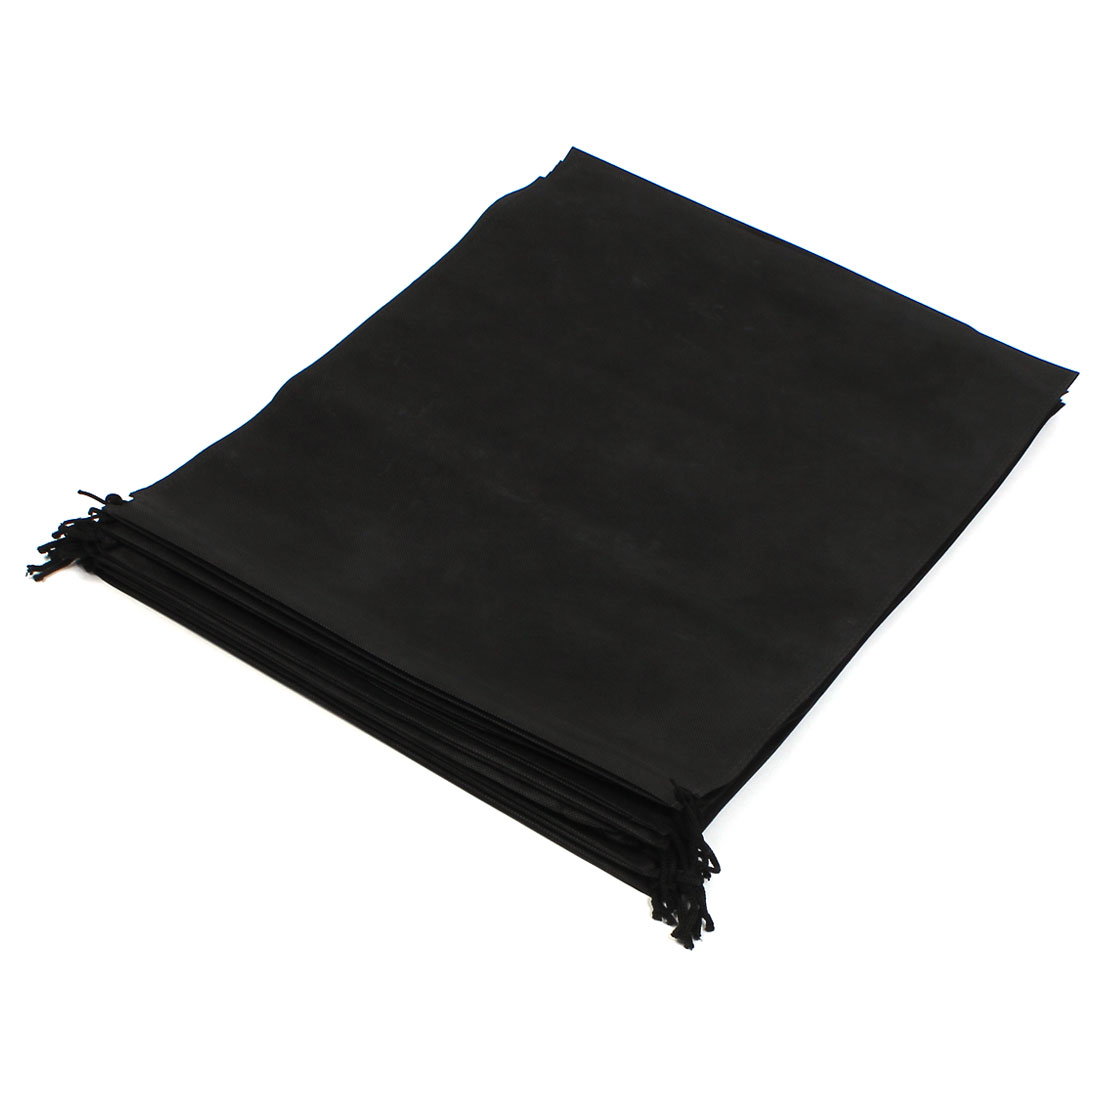 10pcs Black Non-woven Fabric Dustproof Clothes Suit Dust Cover Protector Storage Bag